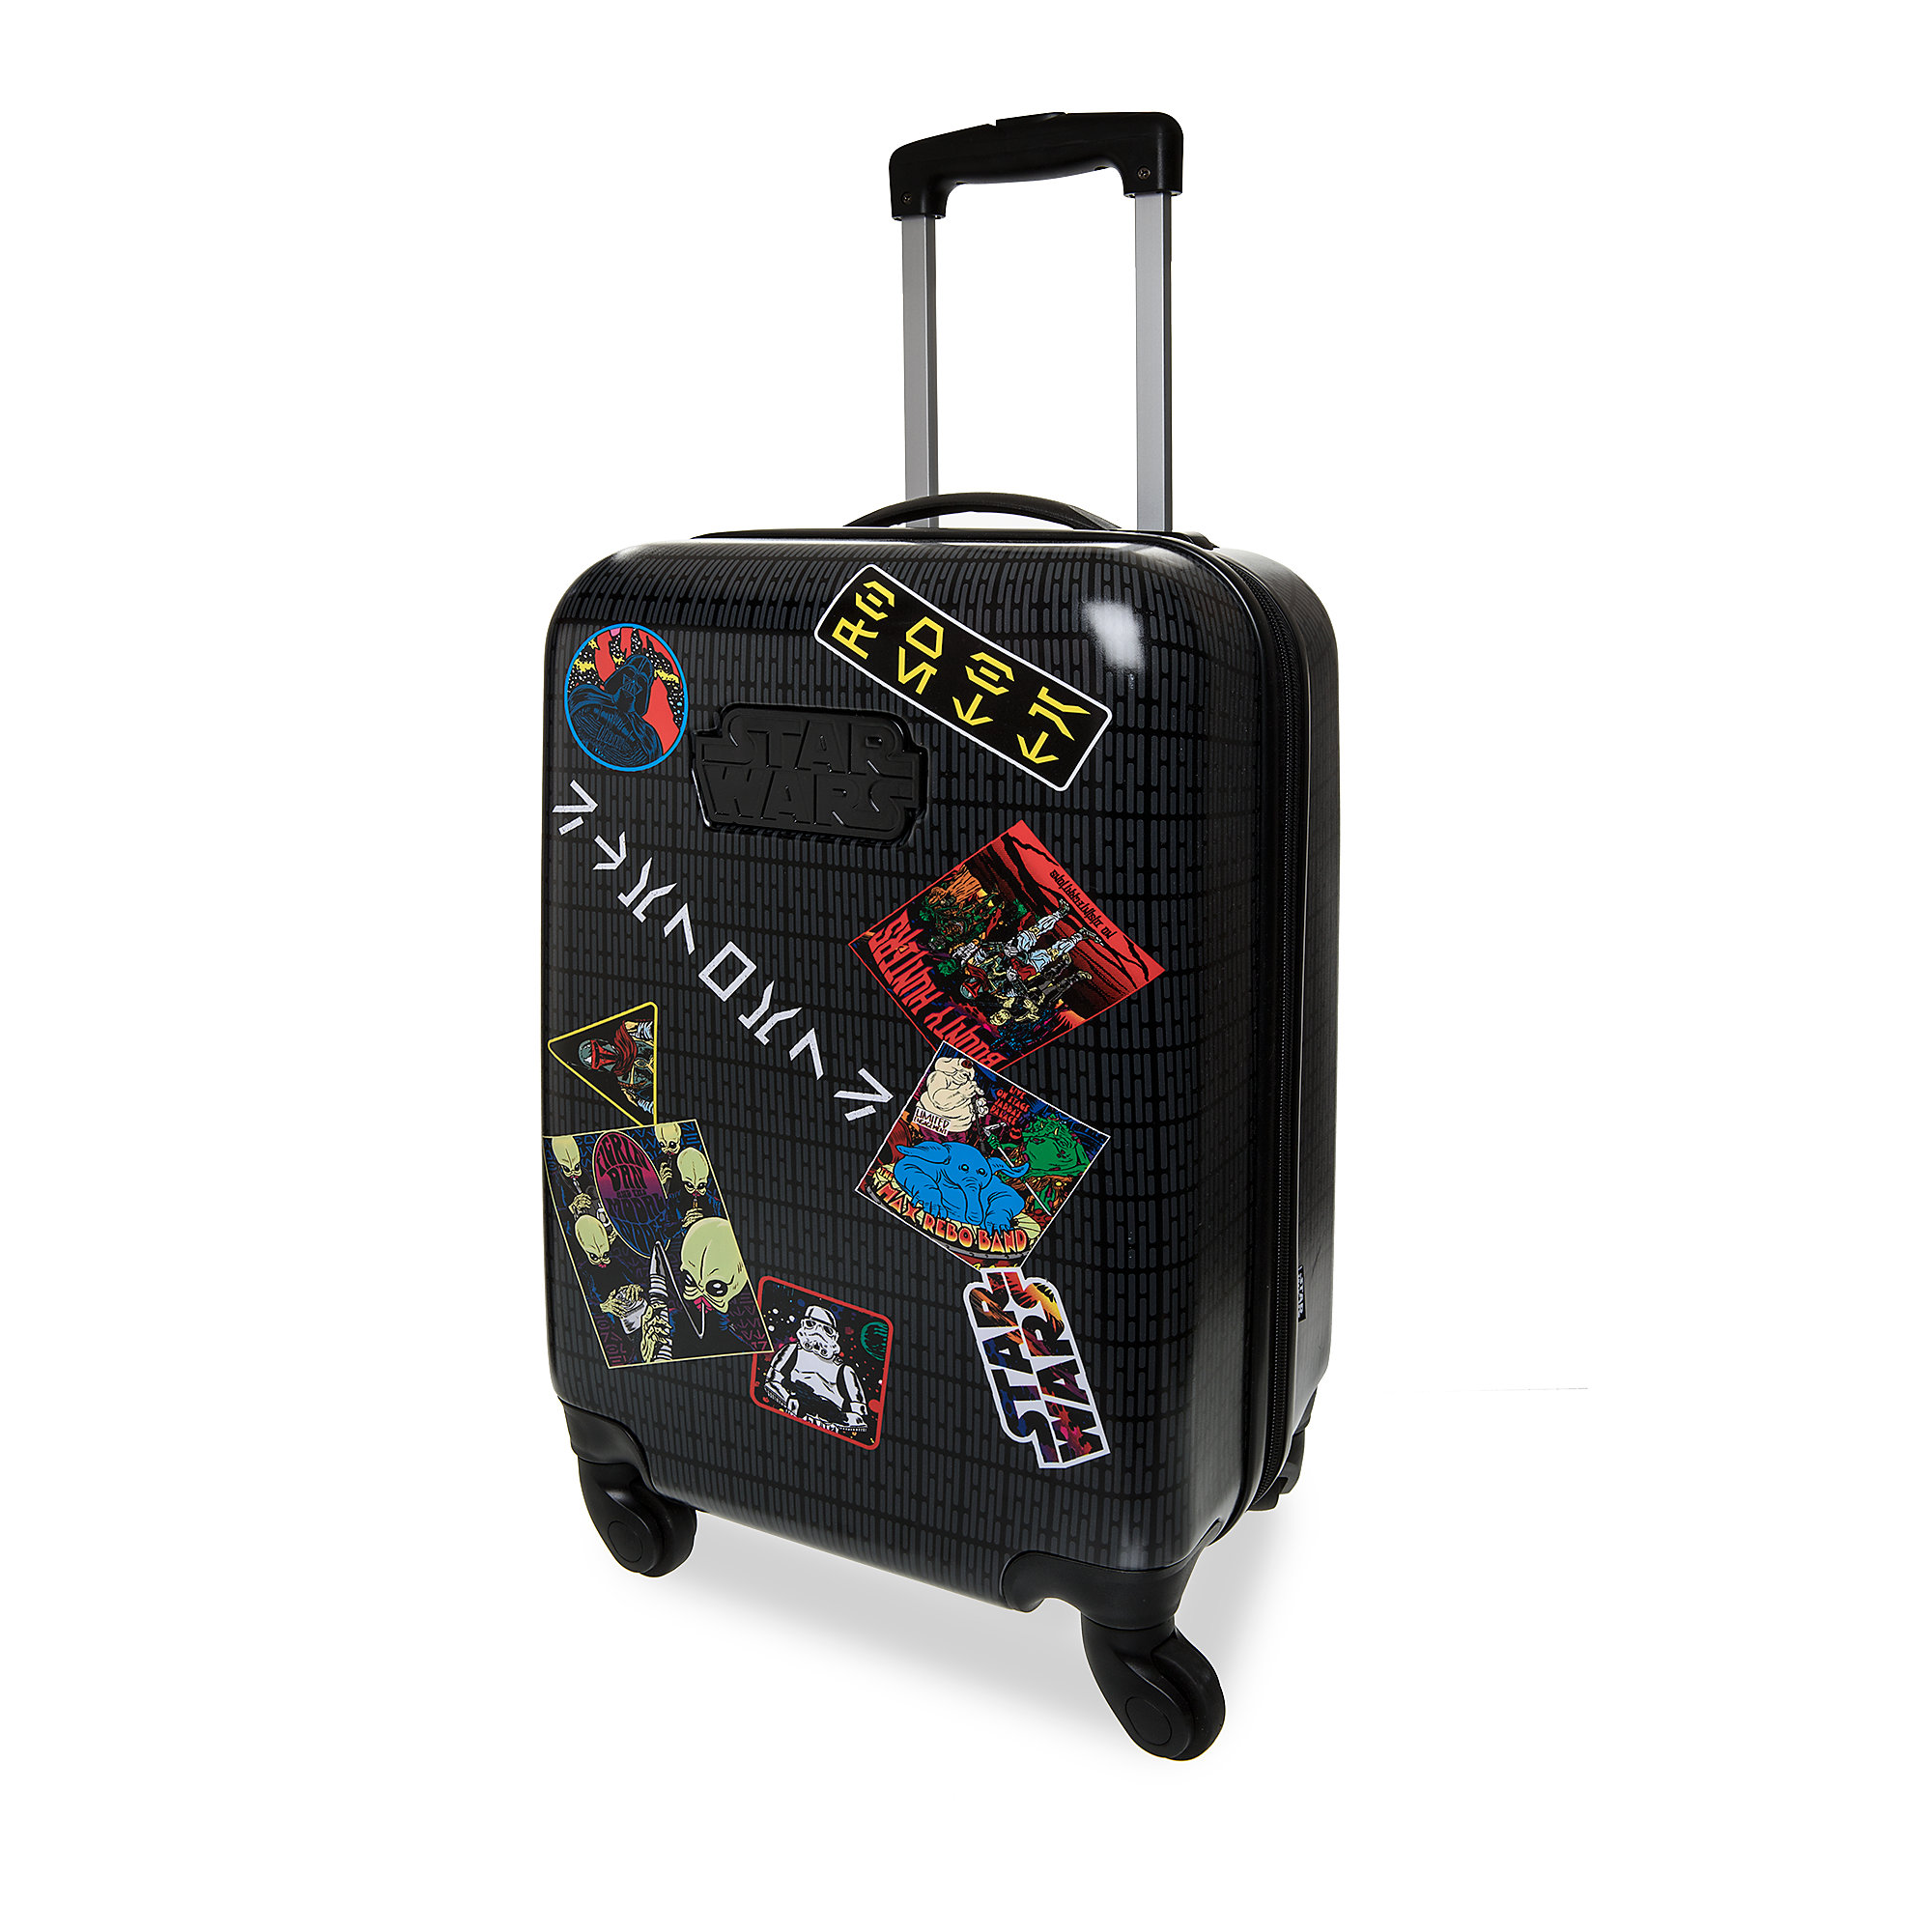 Star Wars Rolling Luggage - Small